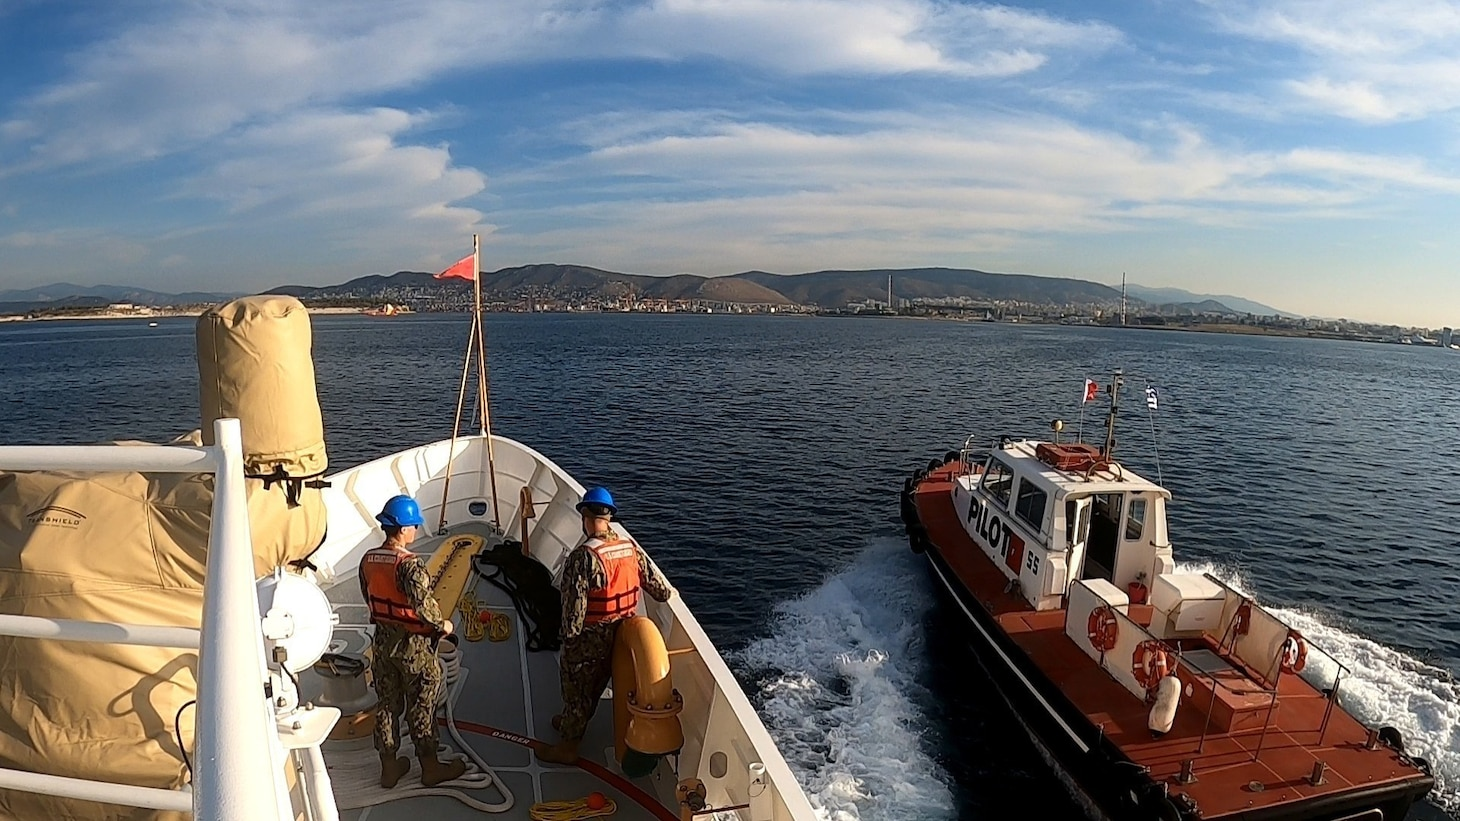 USCGC Charles Moulthrope (WPC 1141) arrives in Athens, Greece on April 26, 2021.